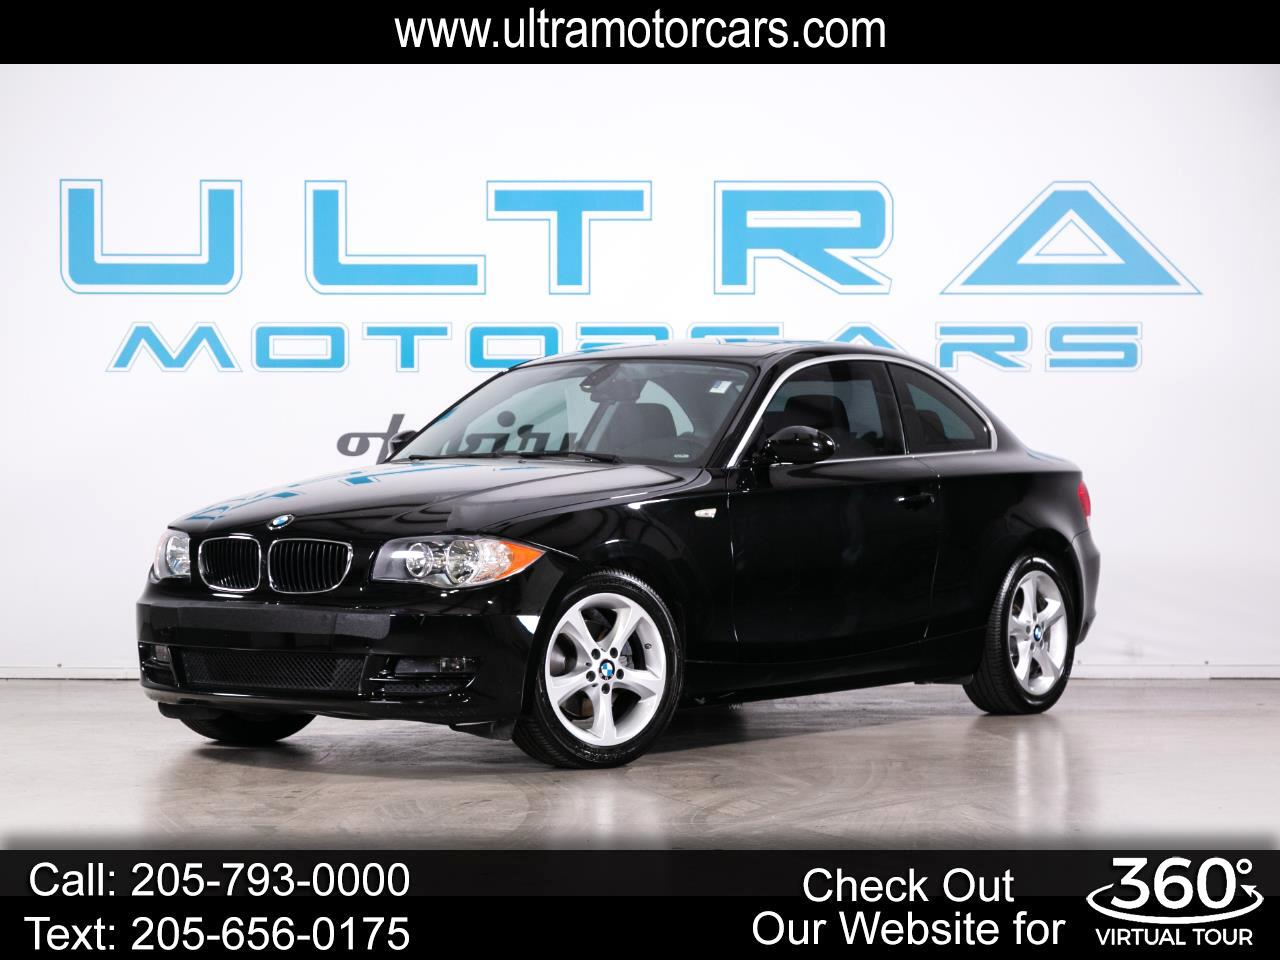 BMW 1 Series 2dr Cpe 128i 2009